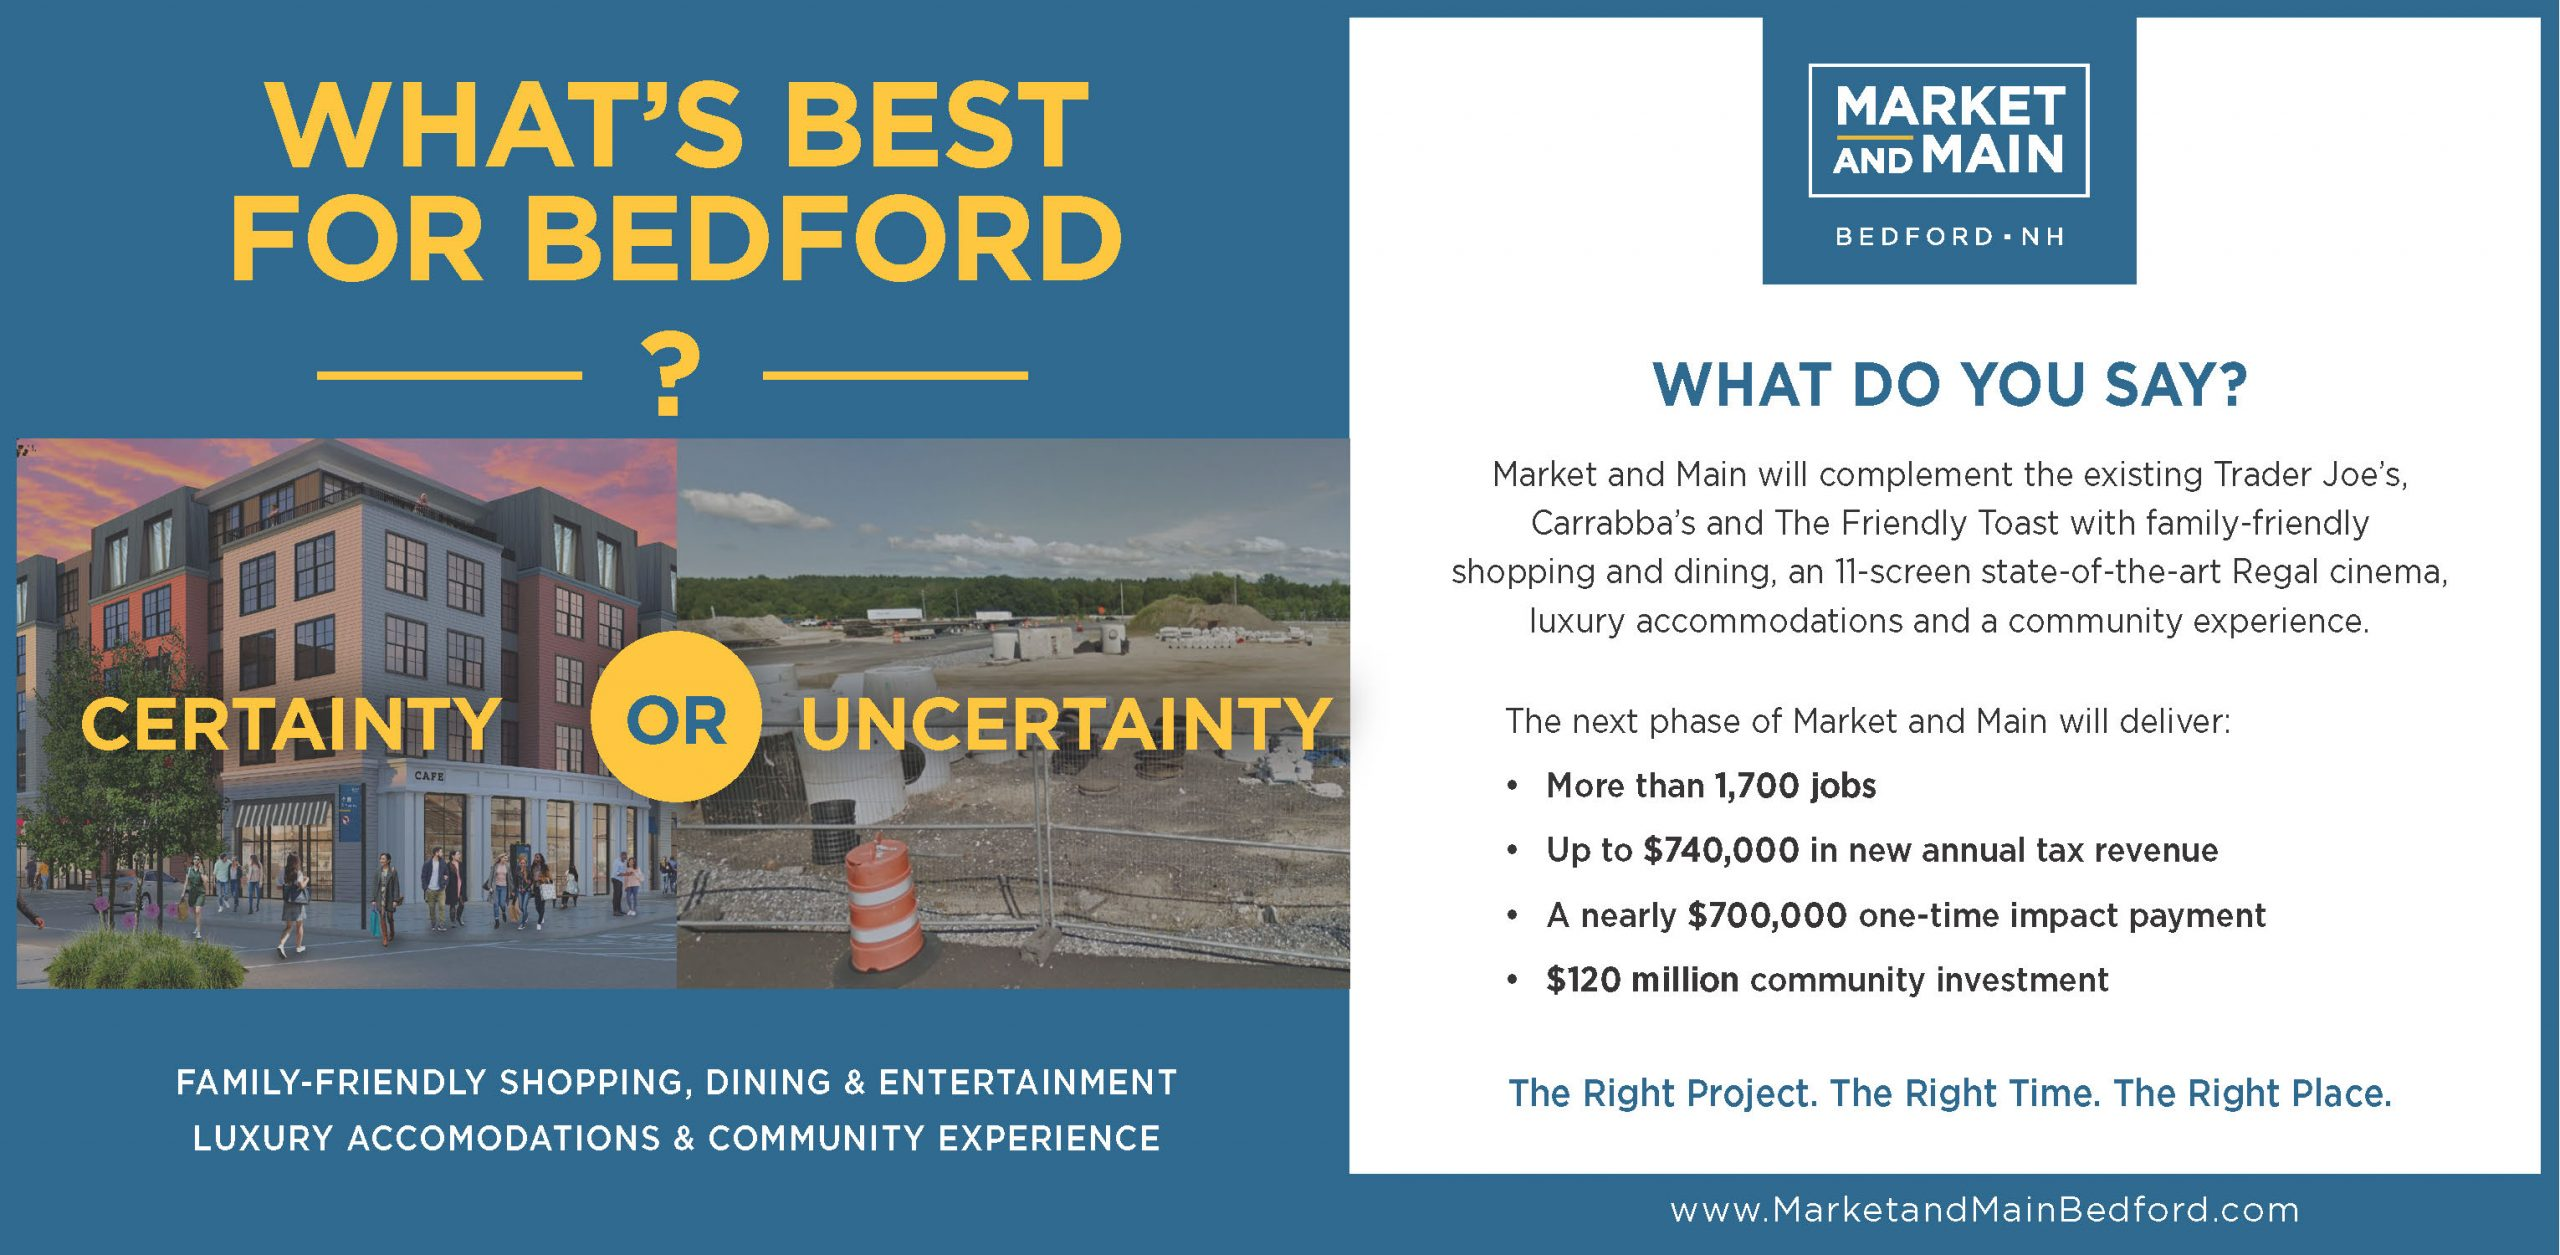 What is best for bedford